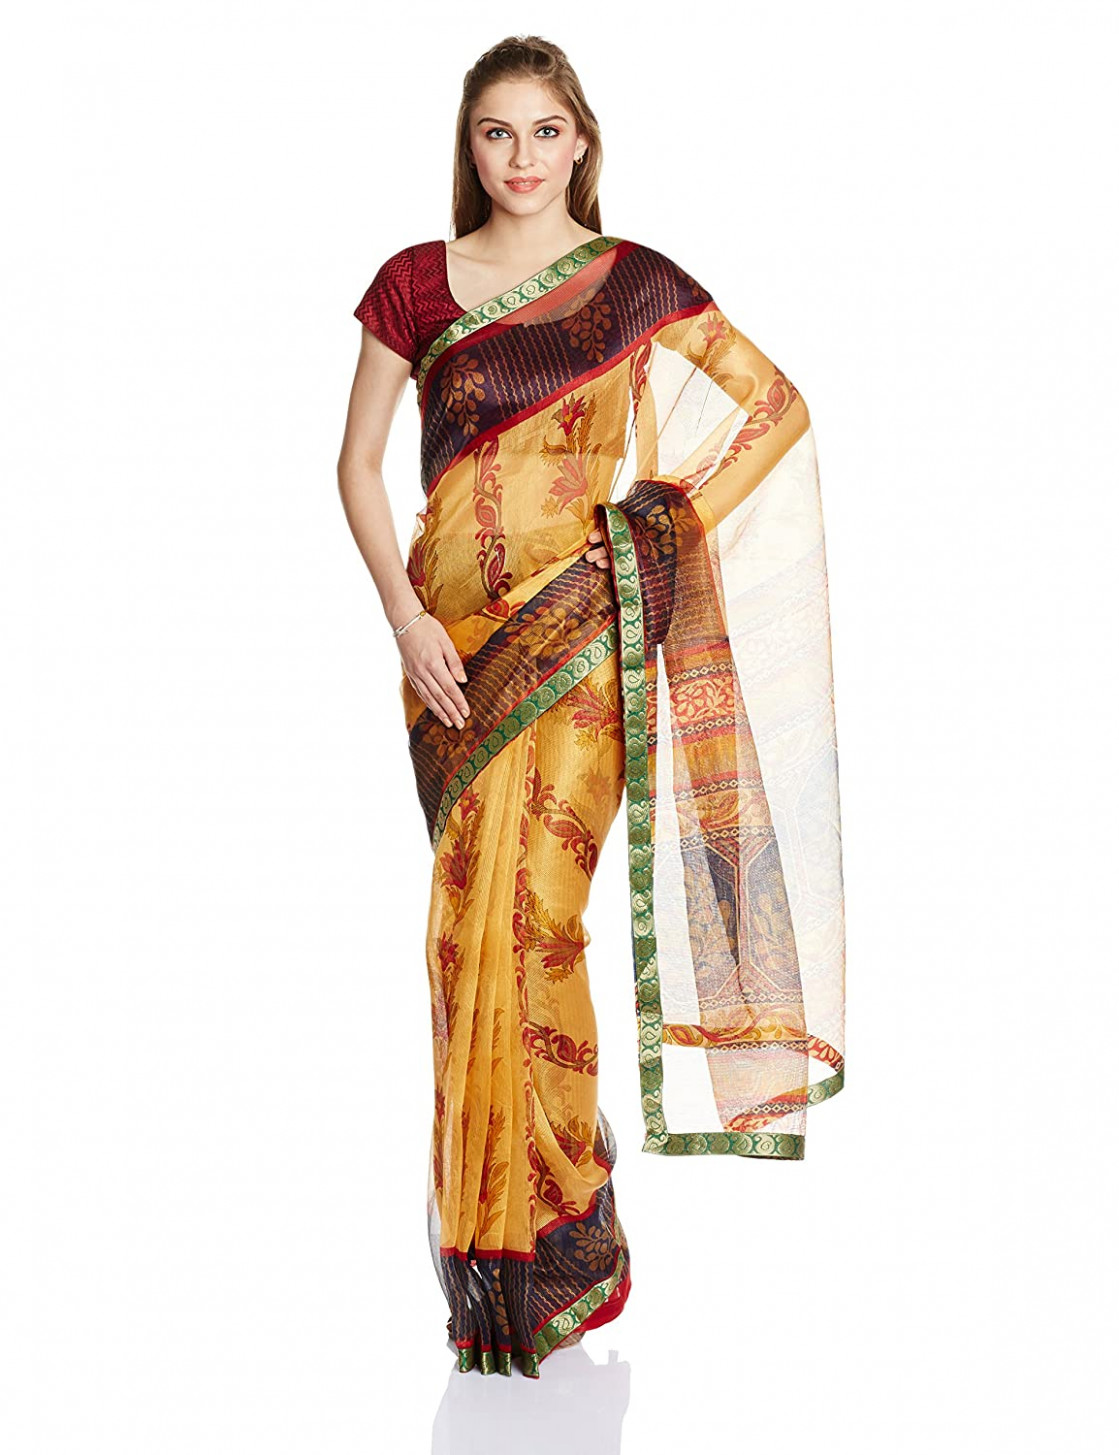 50% discount on Boondh Net Saree with Blouse Piece @350 at